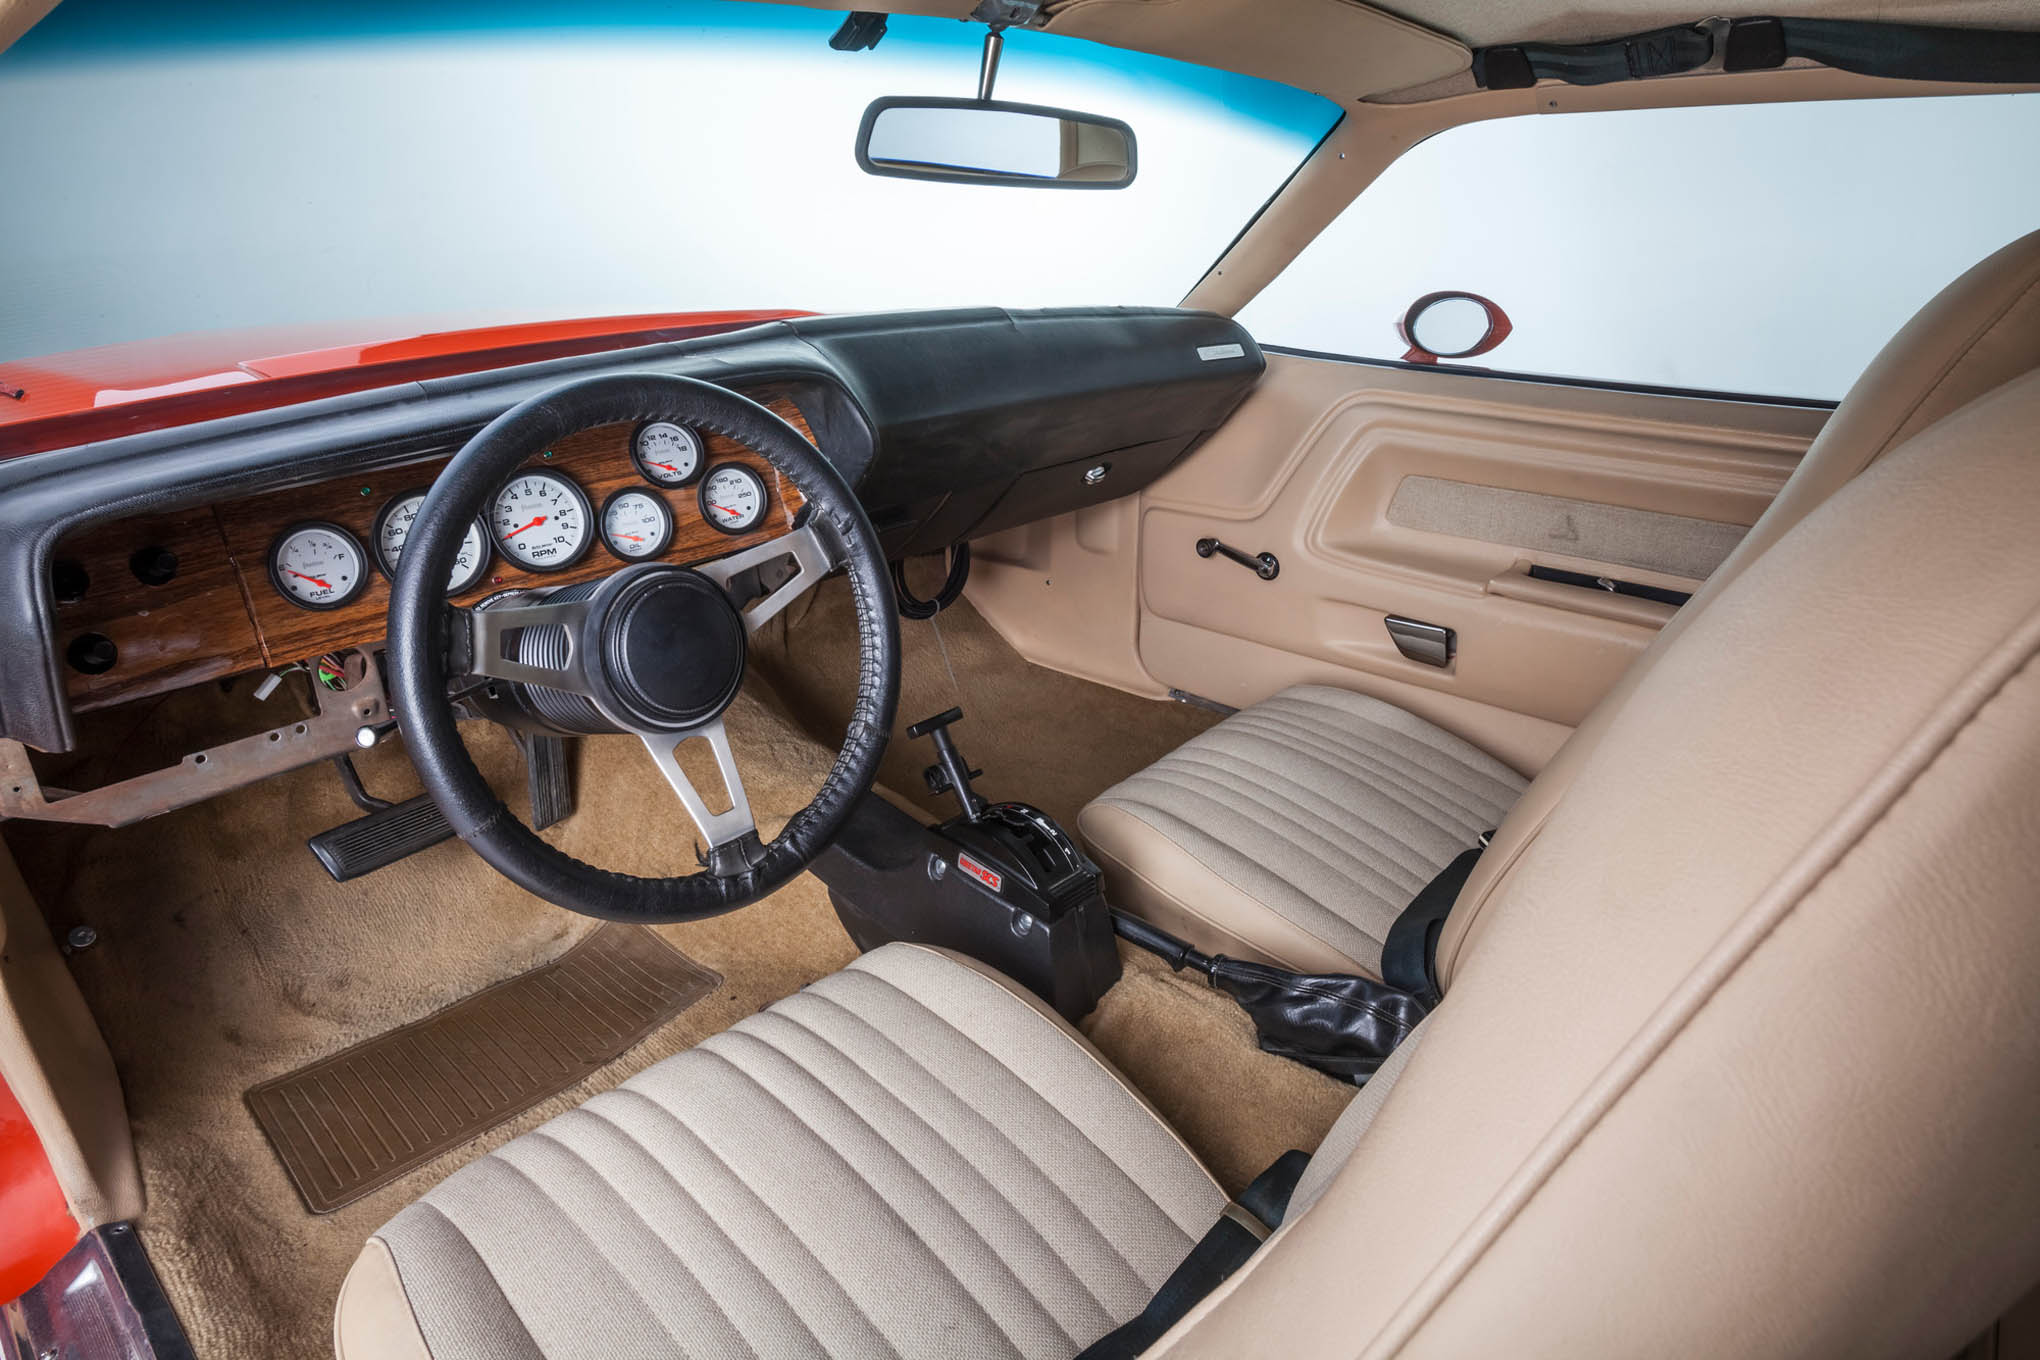 In a nod to the car's predominant use as a street vehicle, Guisto retained most of the original factory interior, including the buckets seats and belts. Auto Meter gauges, a Cheetah Turbo Action shifter, and a fire extinguisher are the exception.